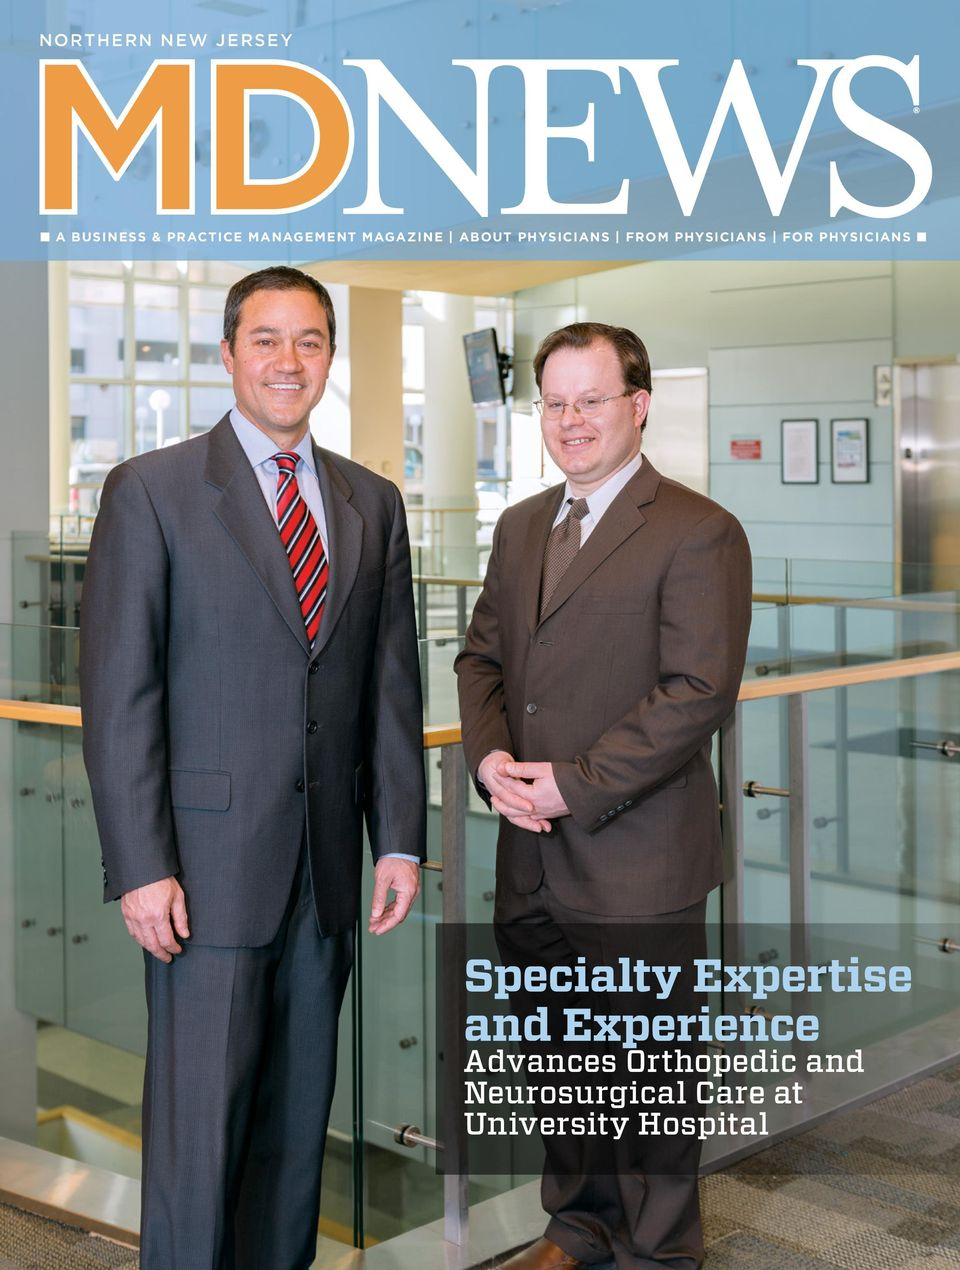 Specialty Expertise and Experience  Advances Orthopedic and